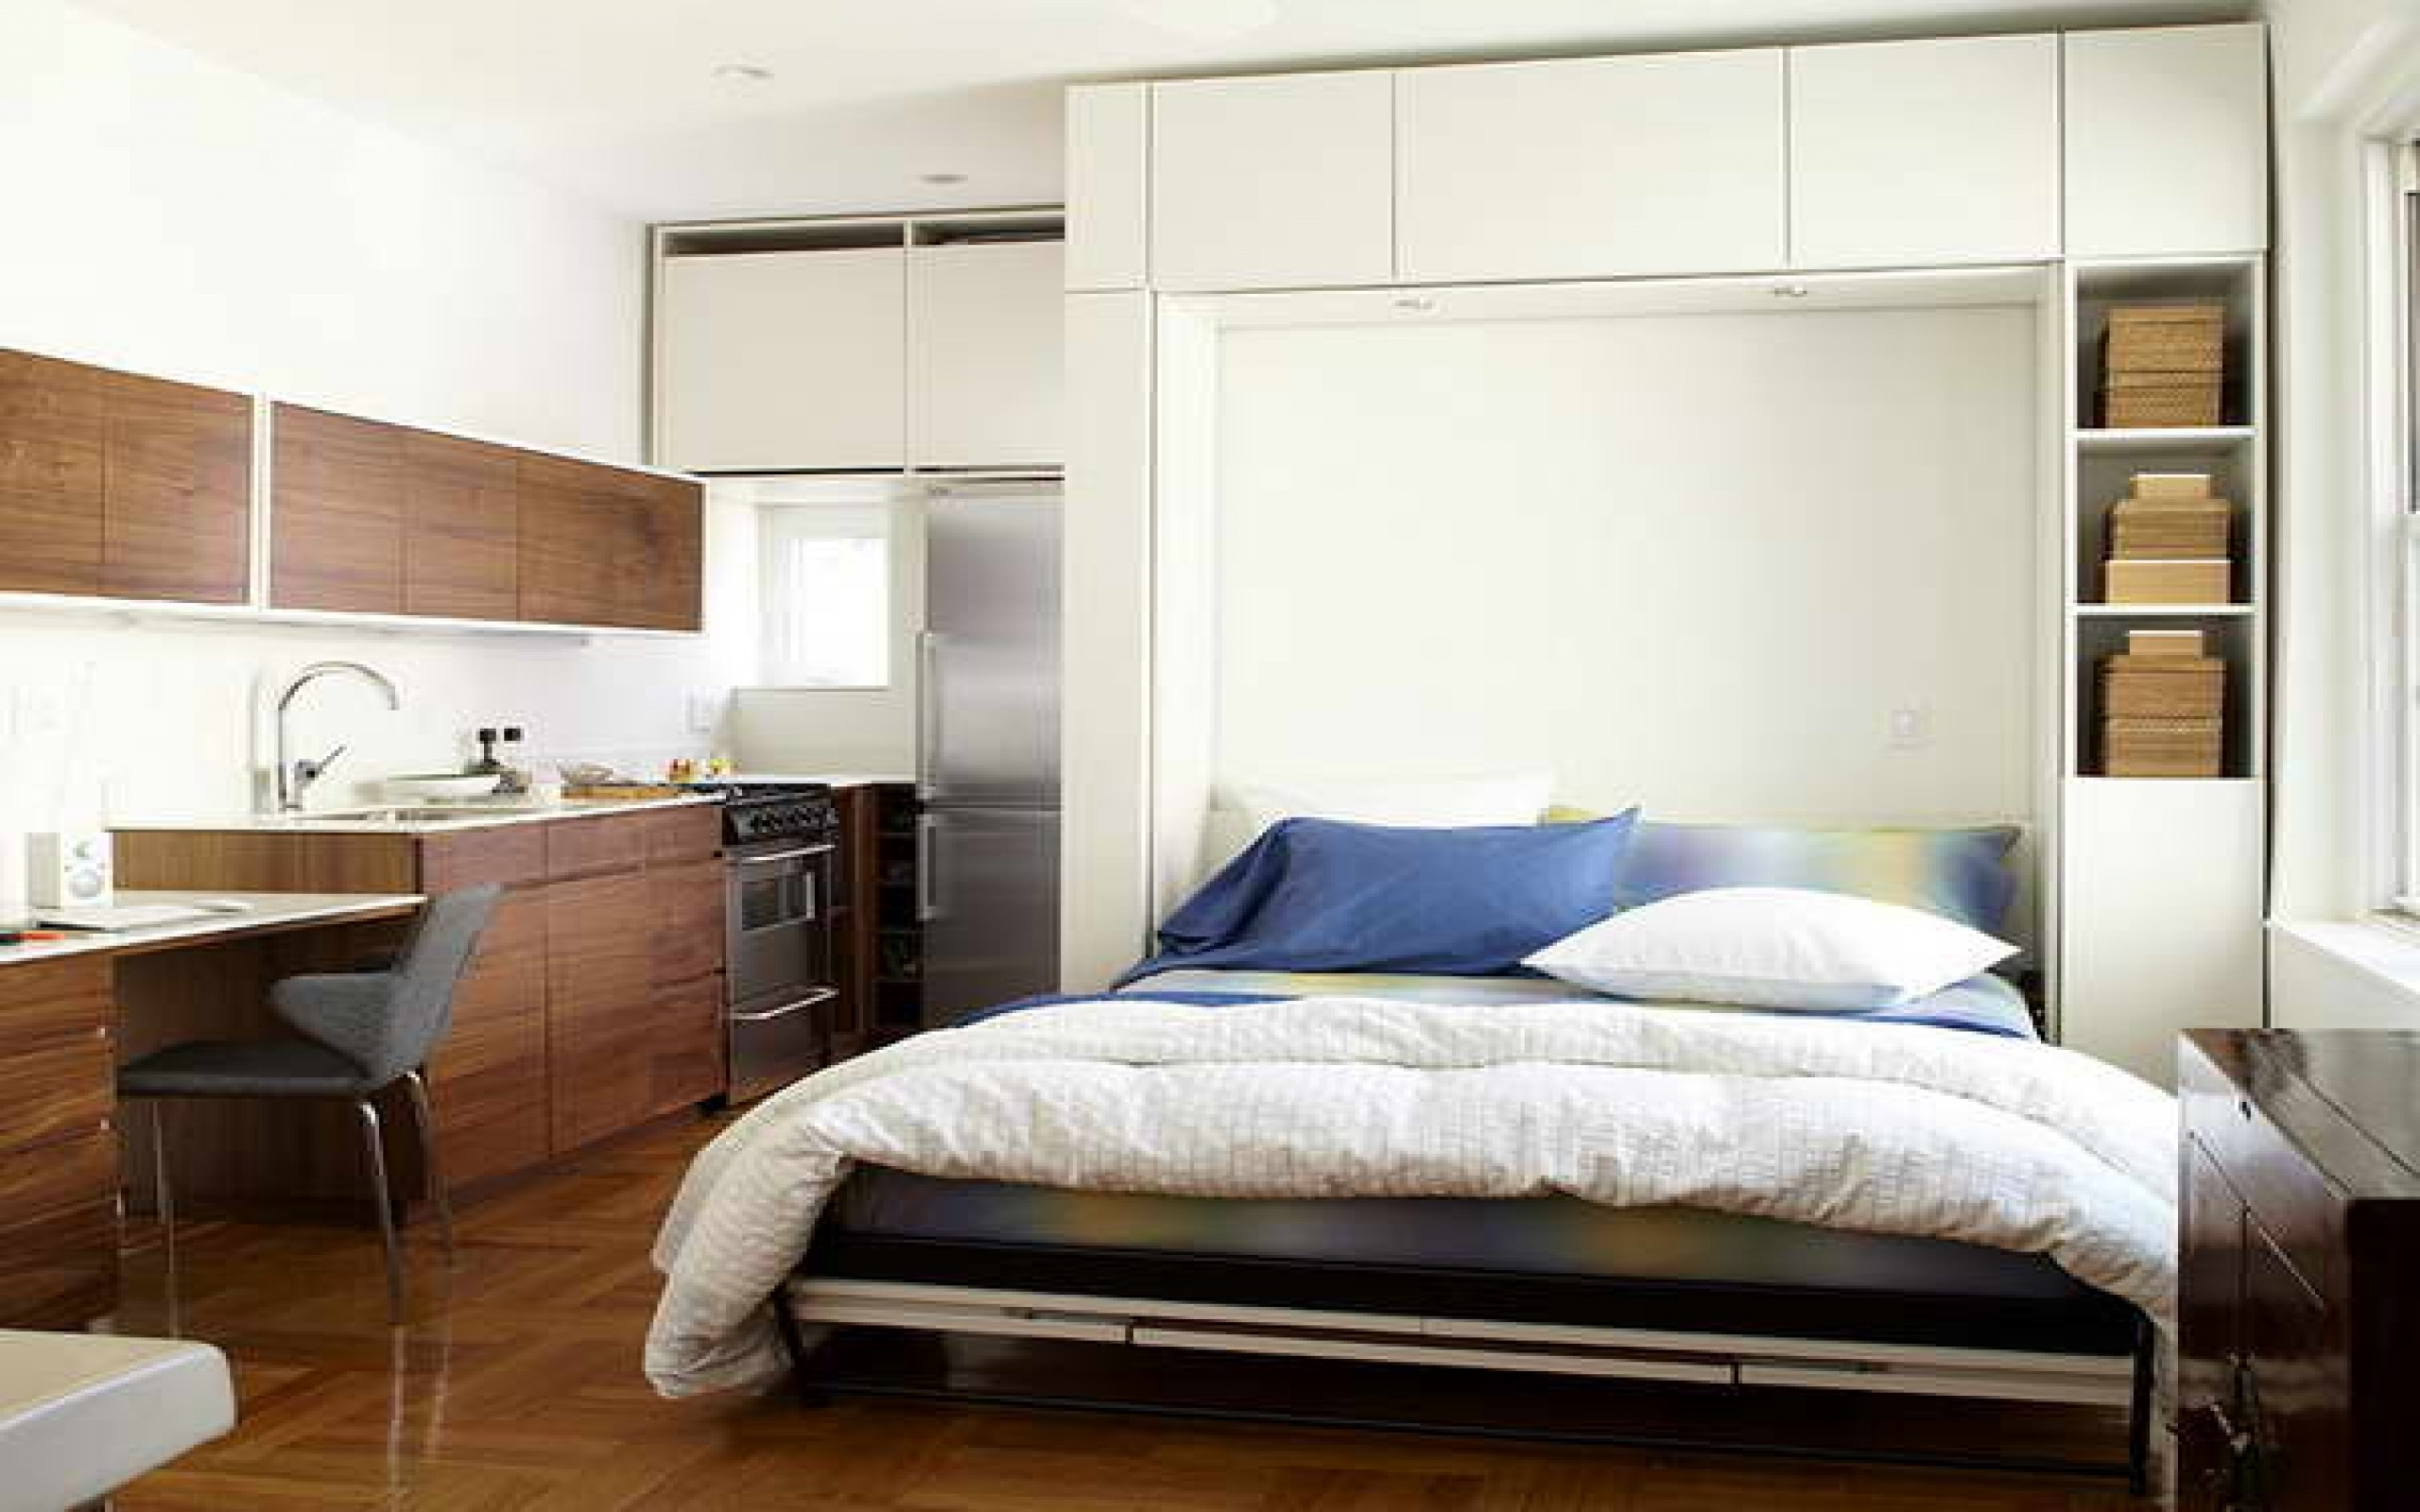 Bedroom install murphy bed wall mounted headboards for king murphy beds canada bestar wall bed wall bed units amipublicfo Image collections